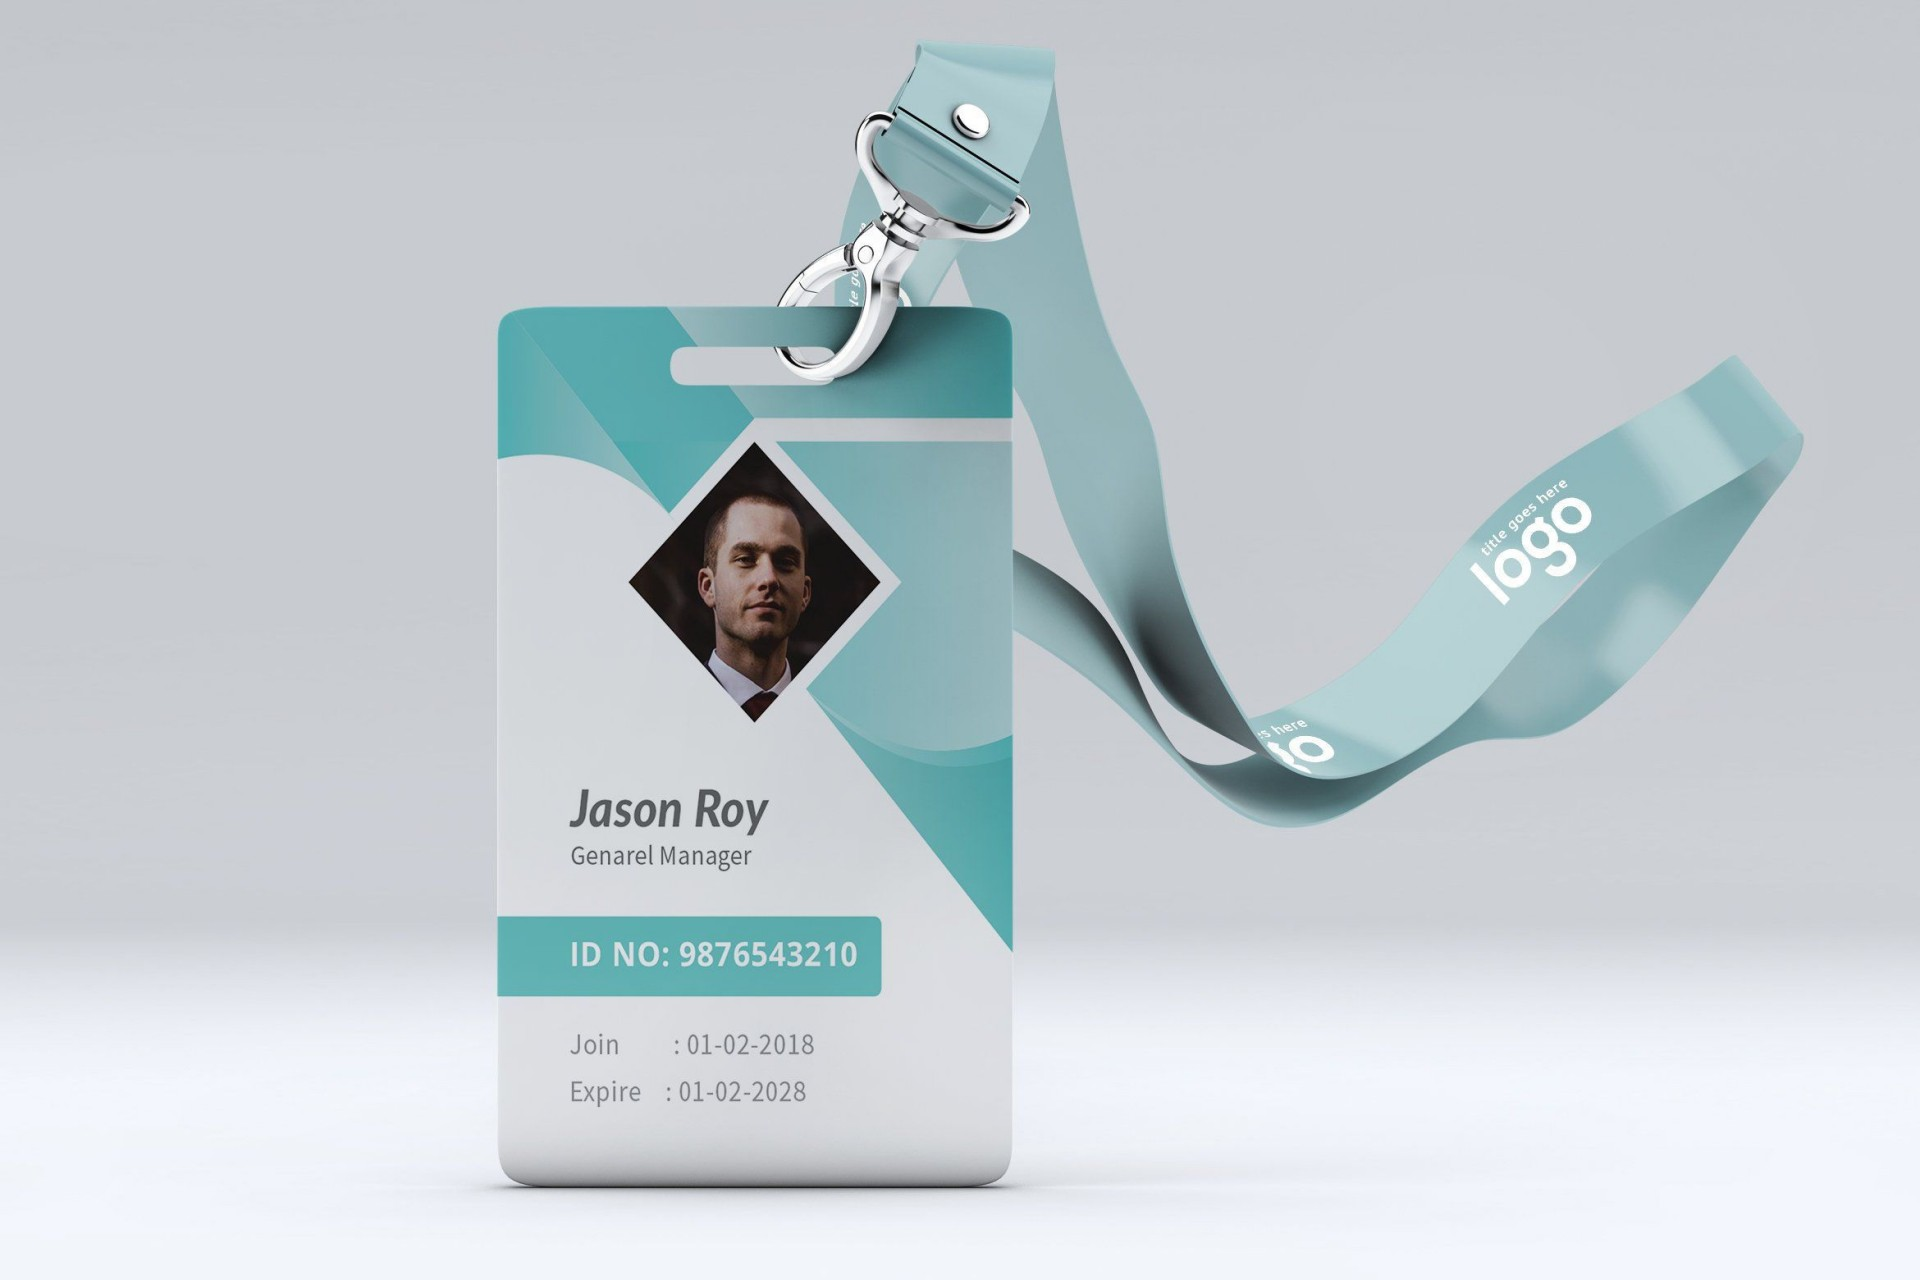 004 Excellent Employee Id Card Template Sample  Free Download Psd Word1920